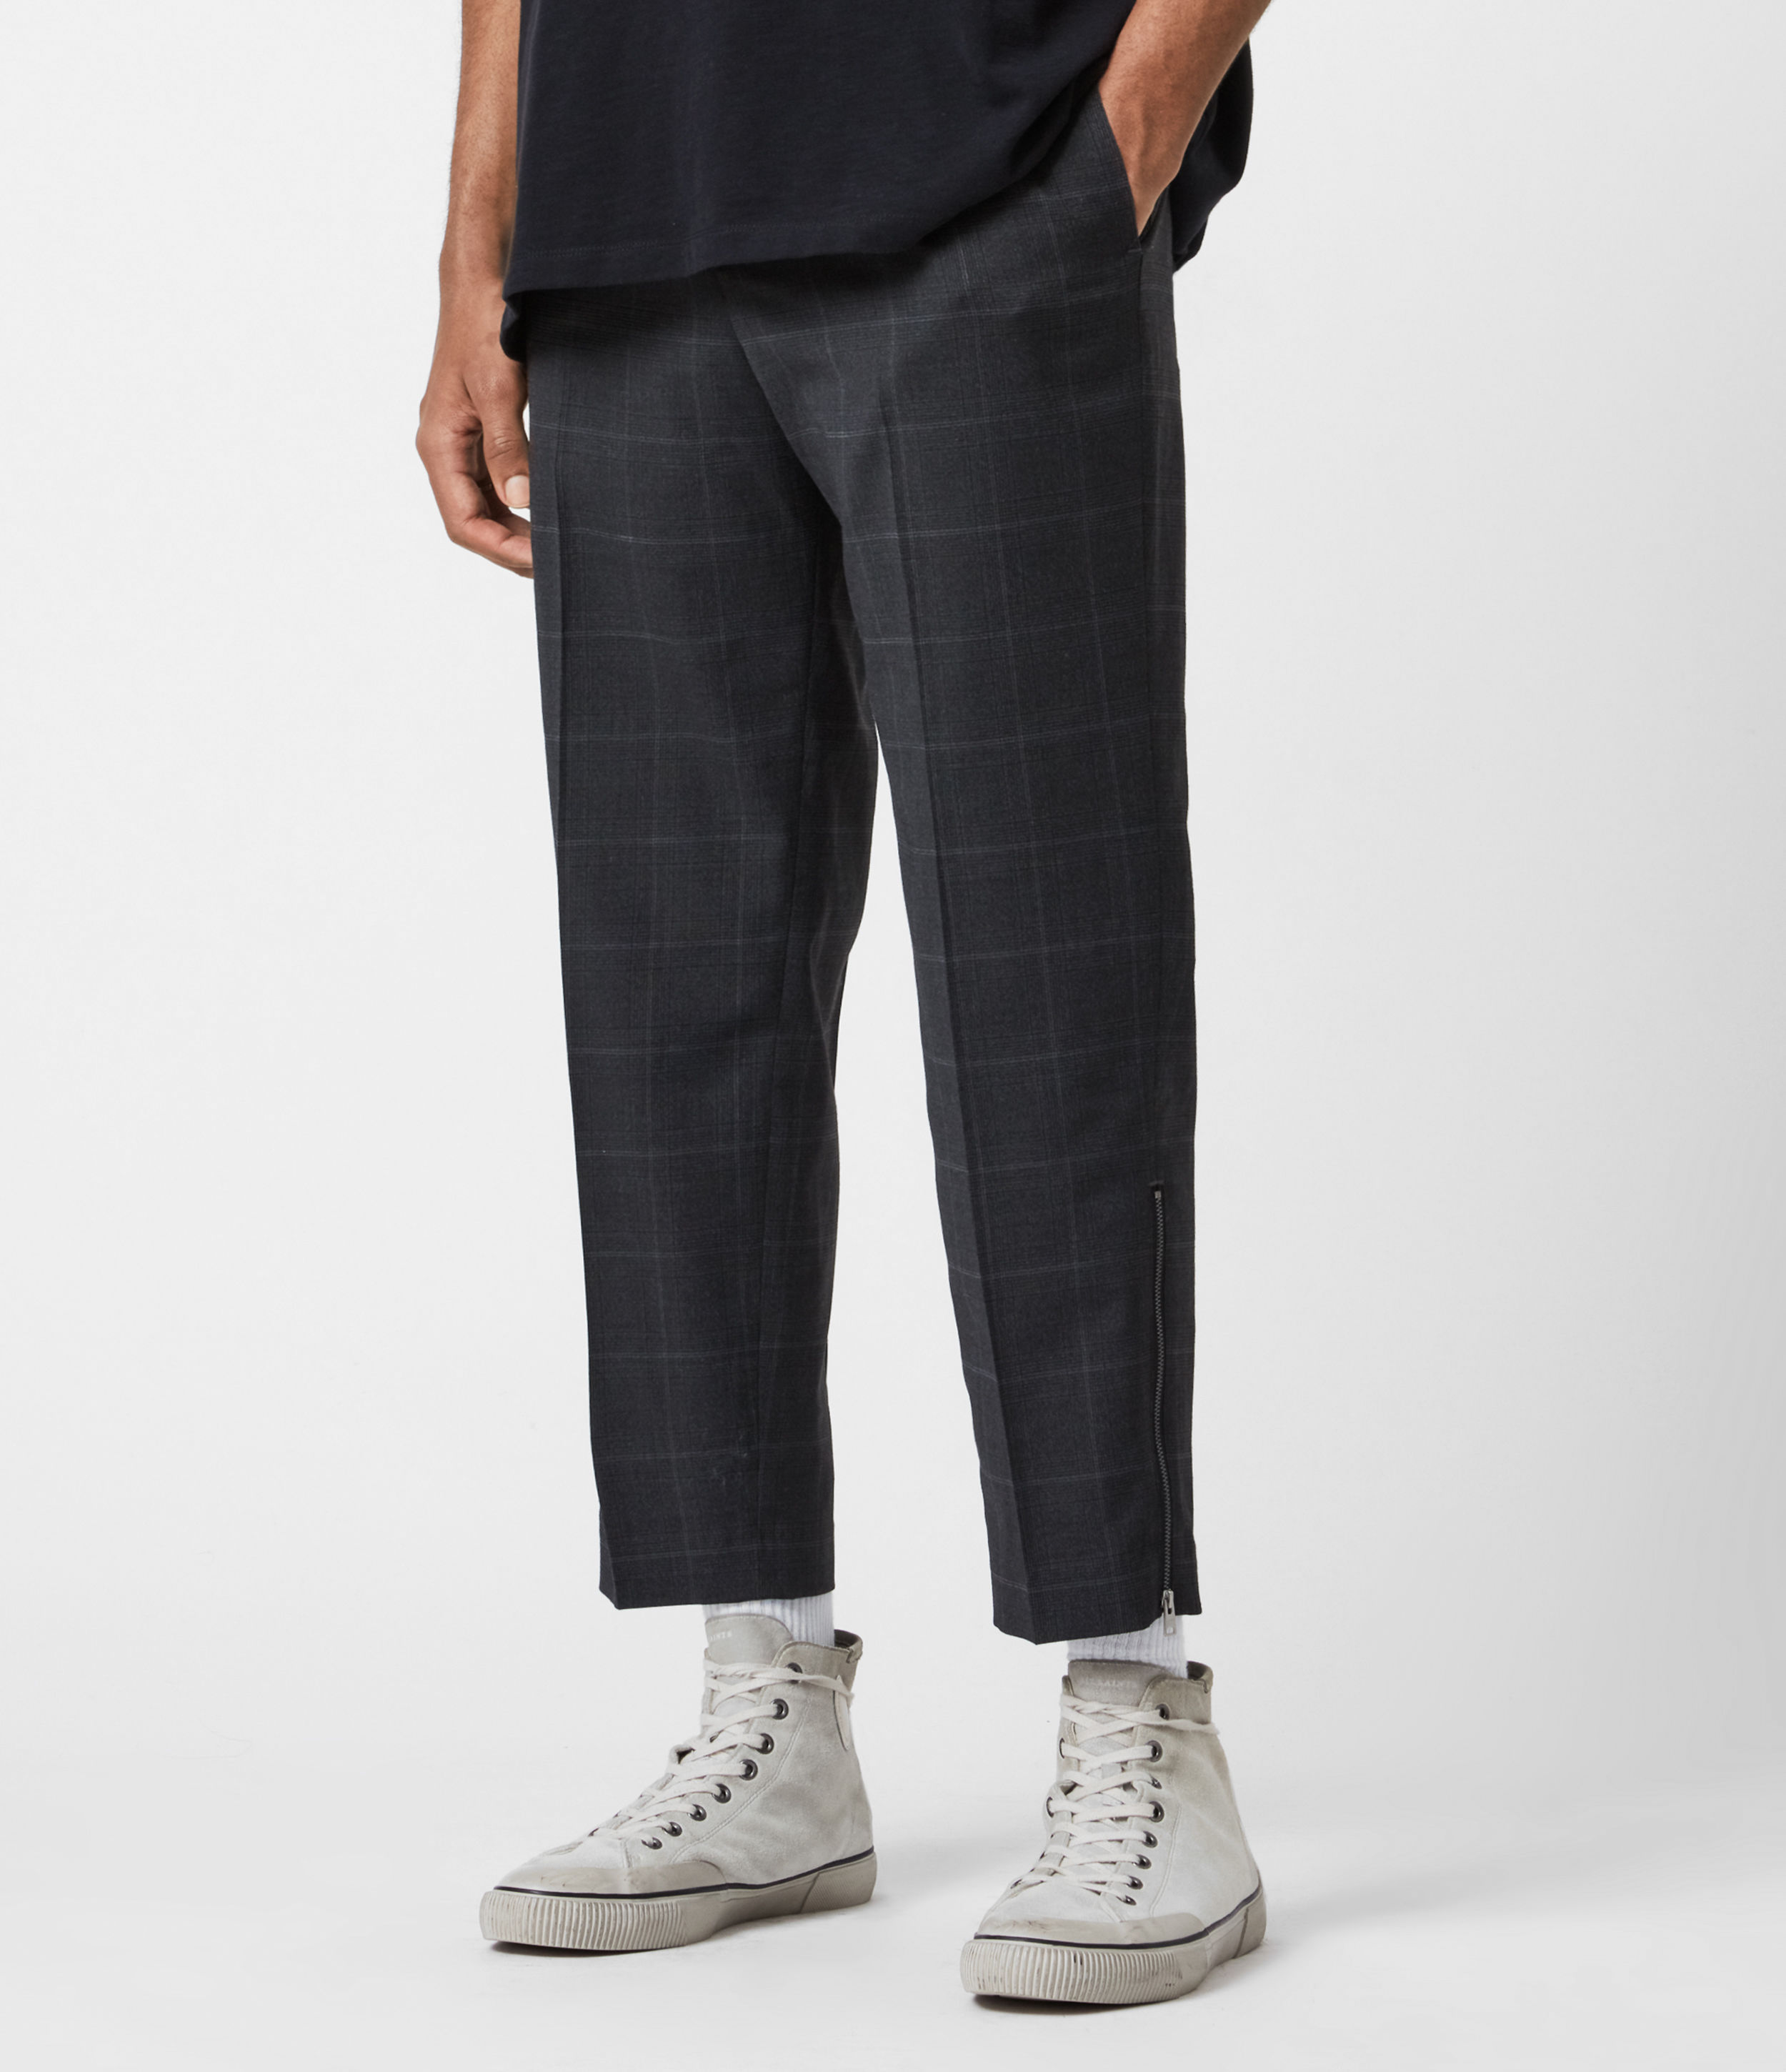 AllSaints Mens Garth Cropped Slim Trousers, Charcoal, Size: 34